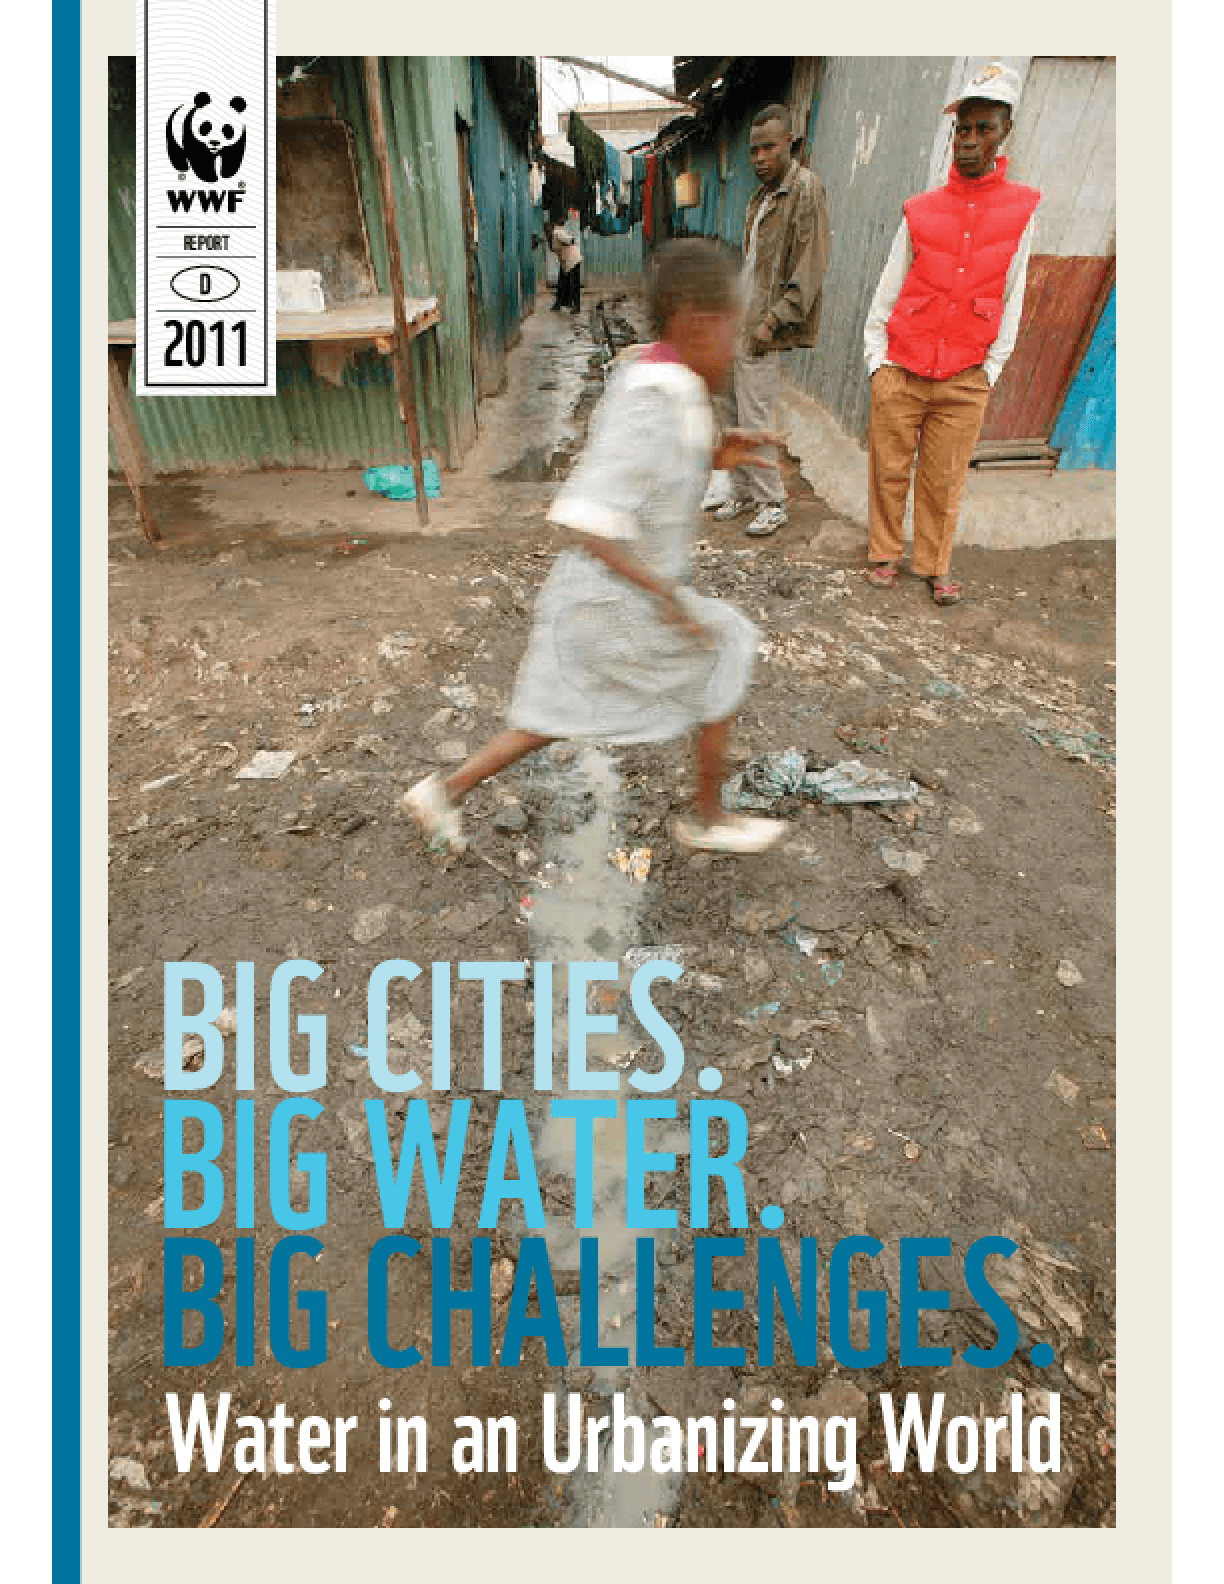 Big Cities. Big Water. Big Challenges: Water in an Urbanizing World.